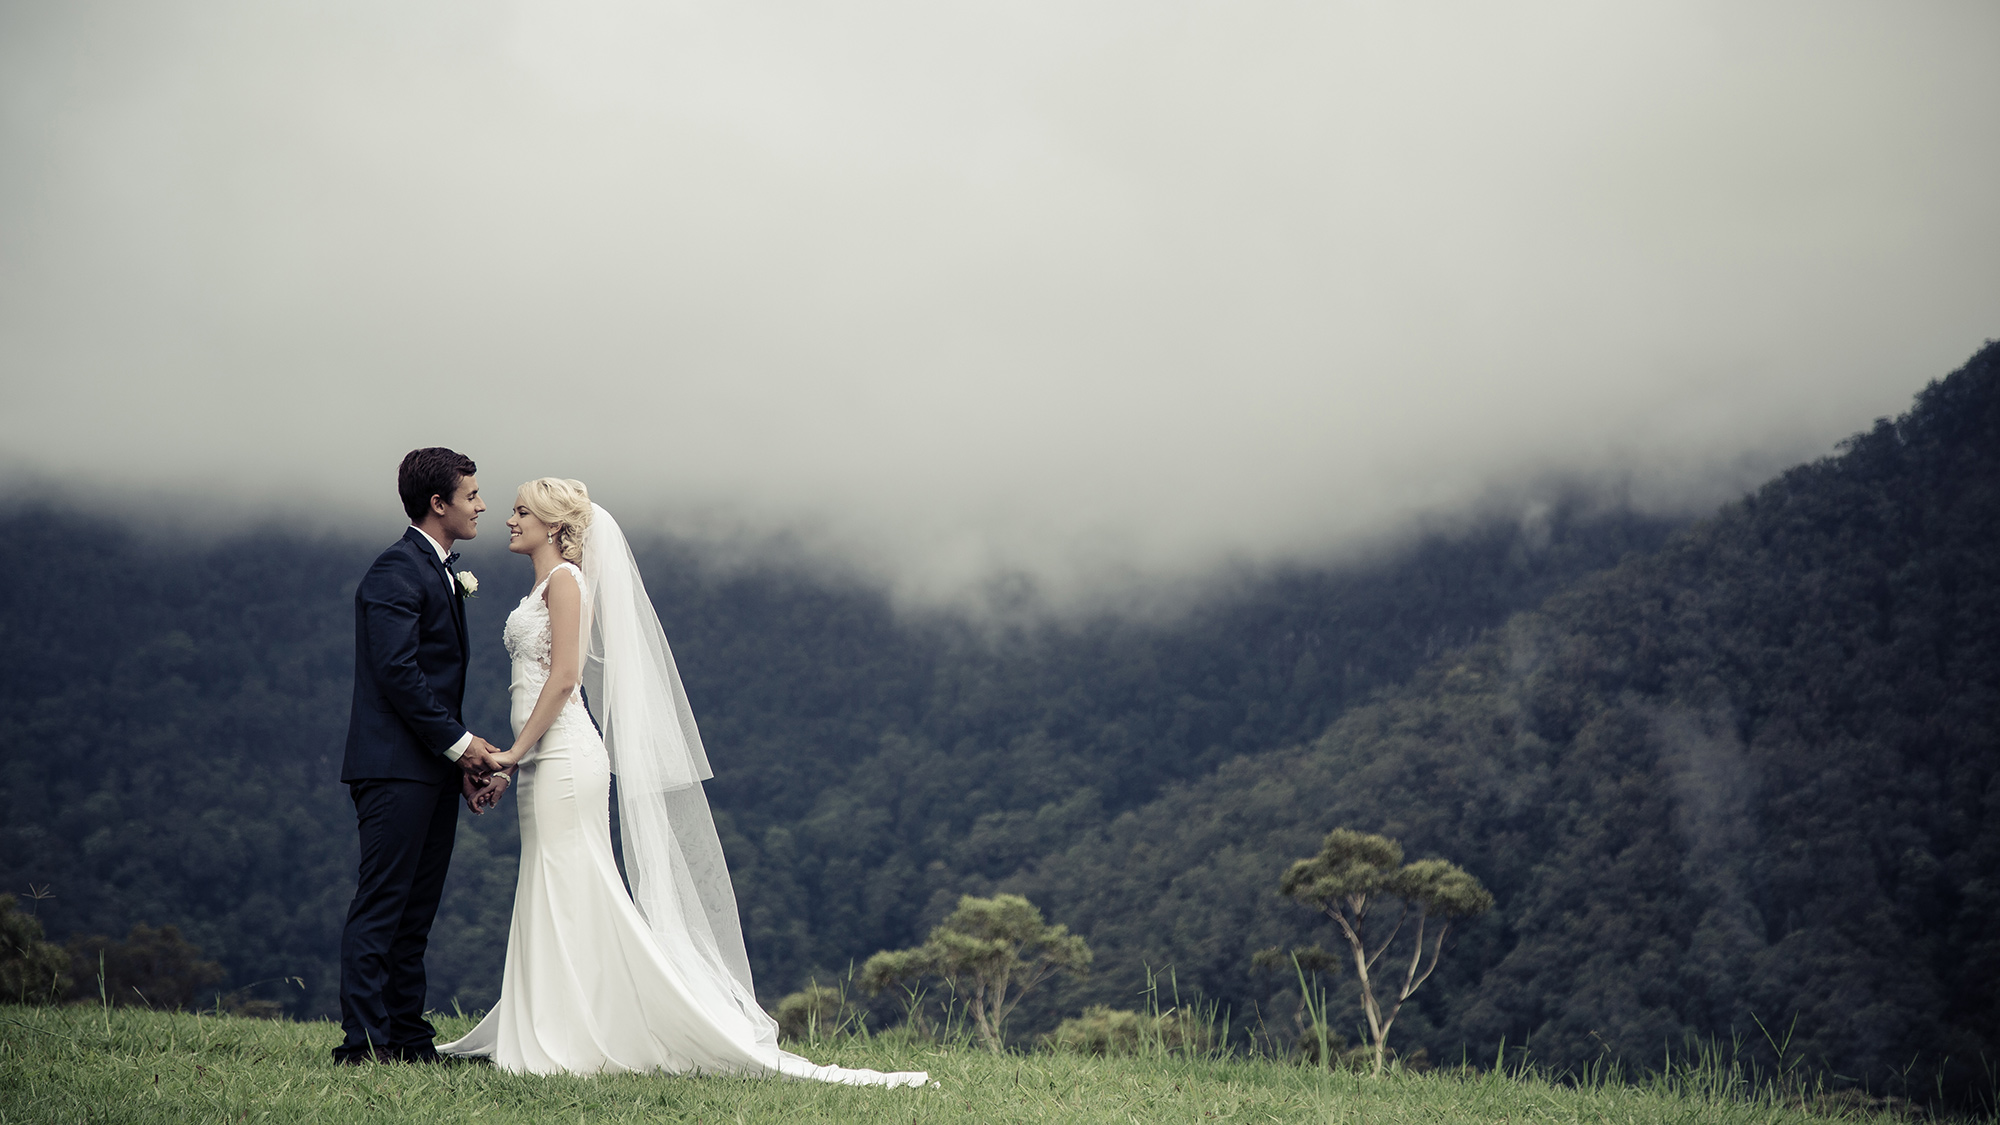 Gold Coast and brisbane wedding videographer